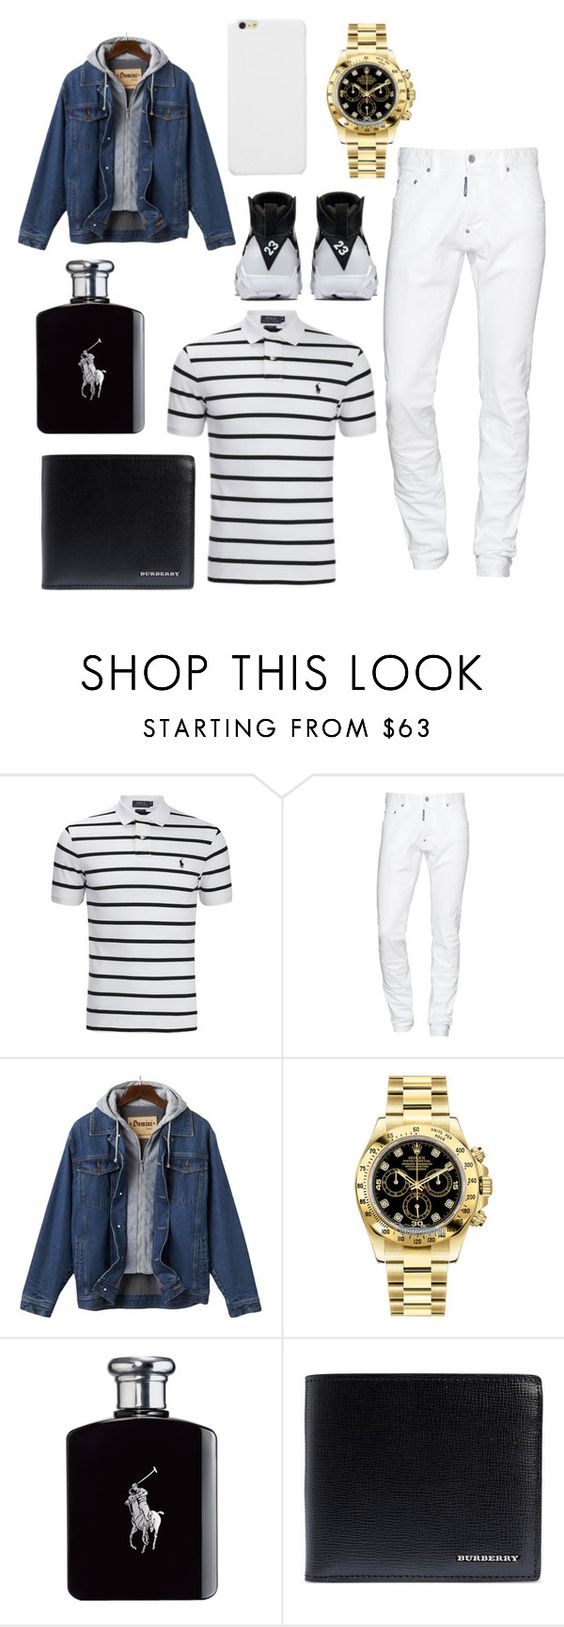 """Untitled #936"" by blueblessed ❤ liked on Polyvore featuring Ralph Lauren, Dsquared2, Rolex, Burberry, men's fashion and menswear"